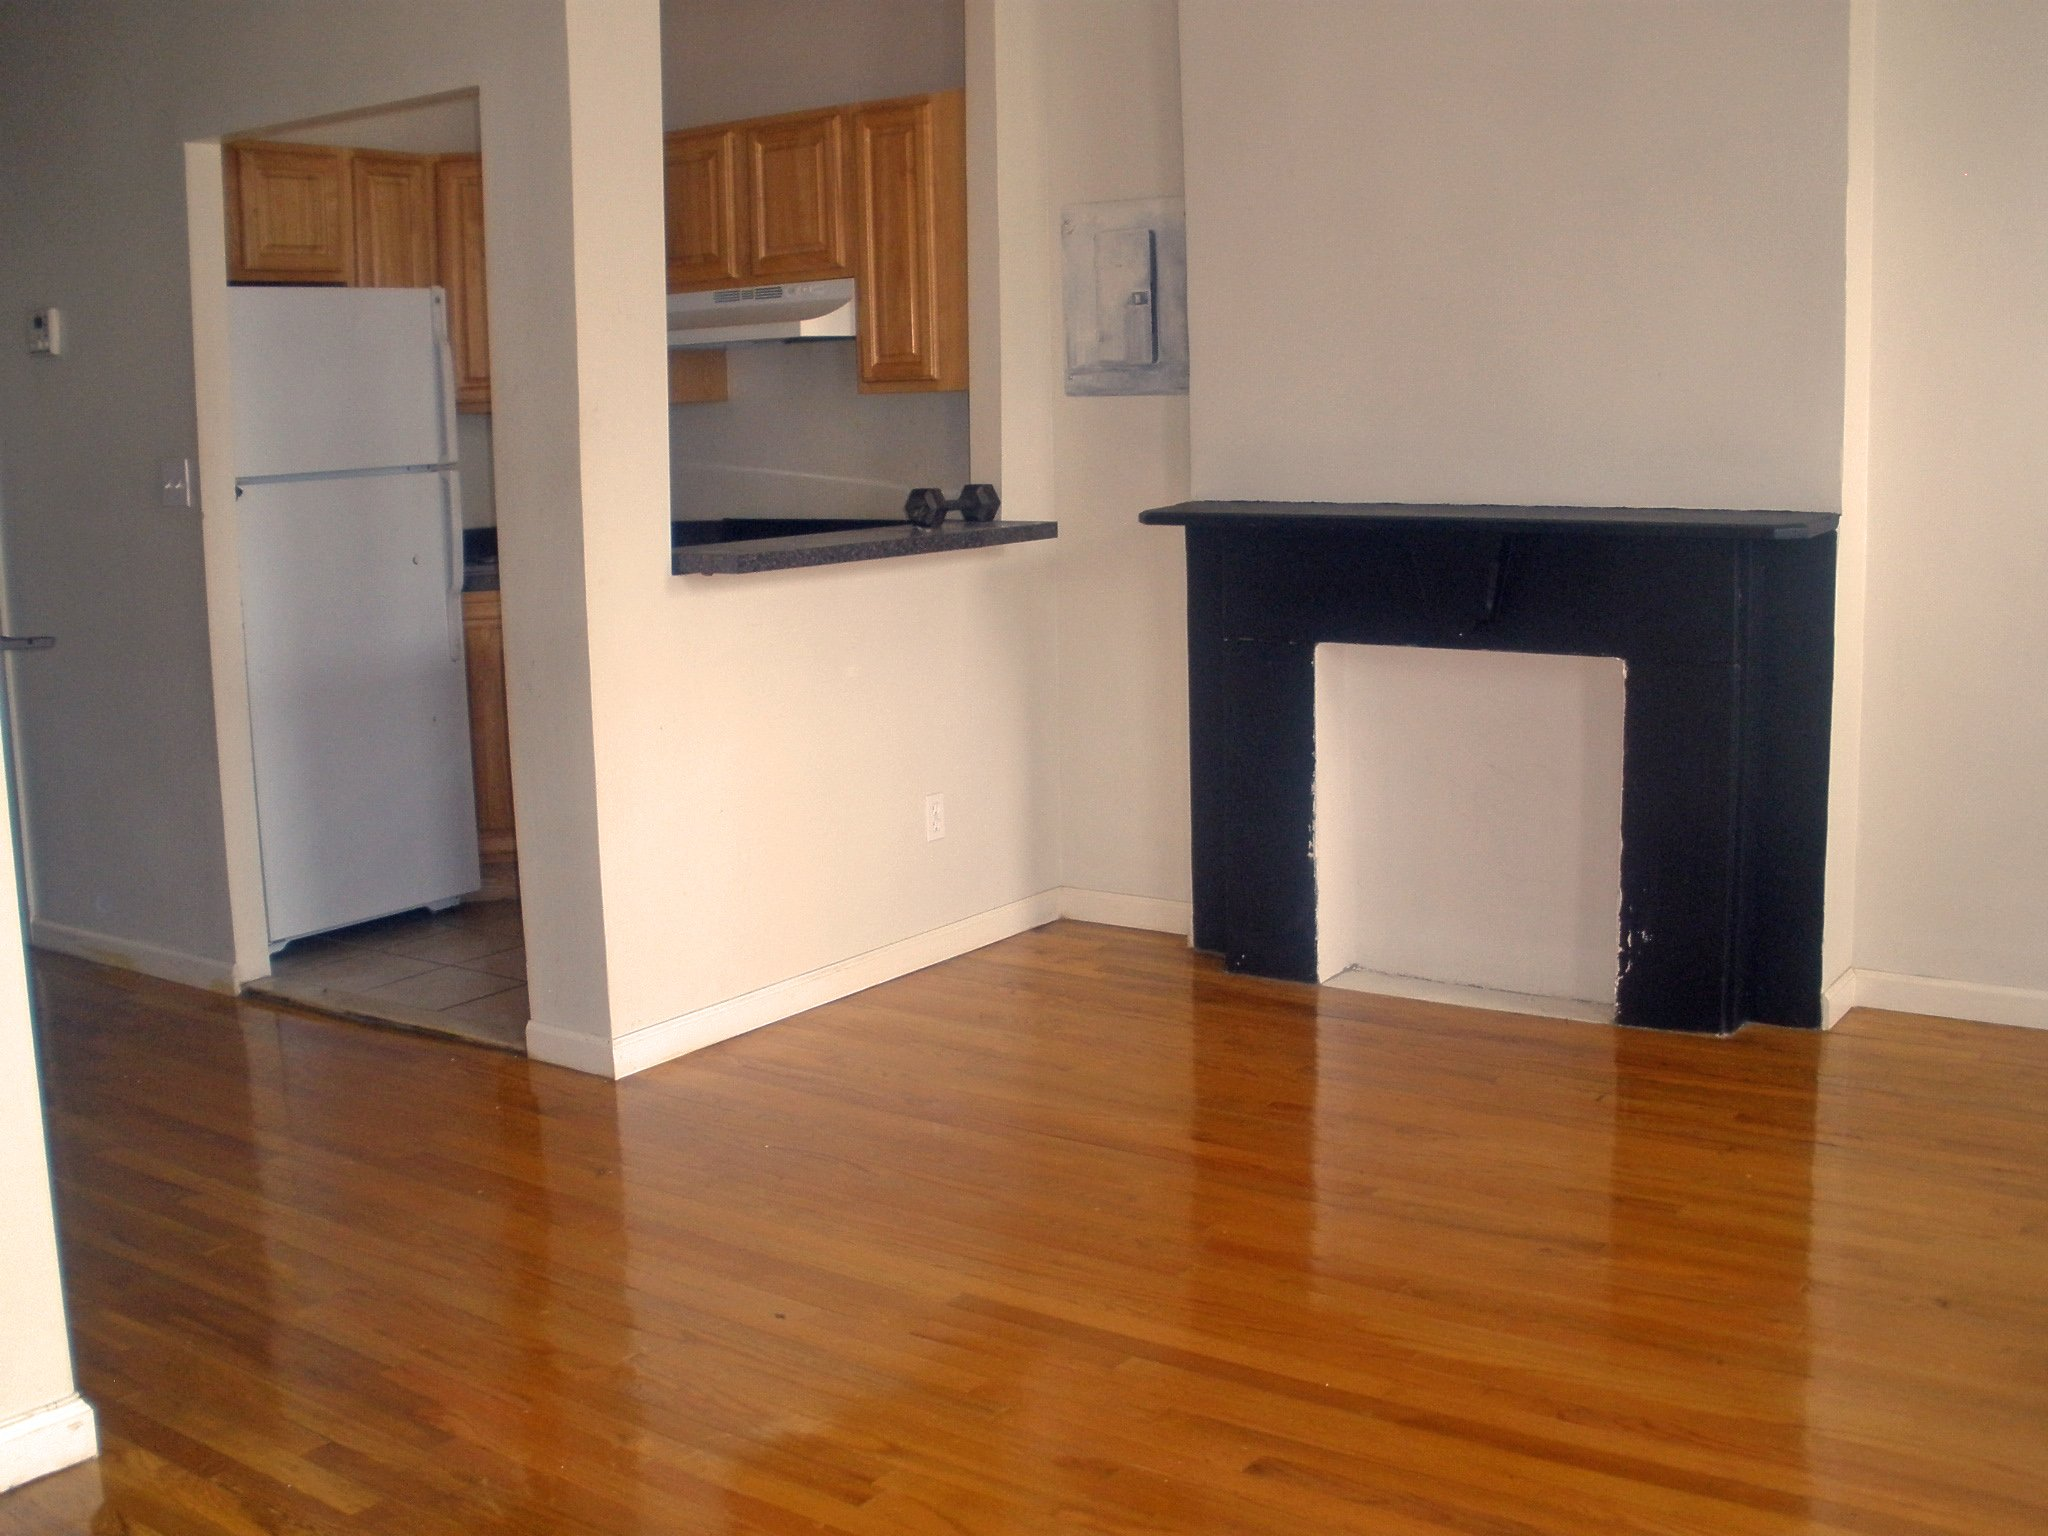 brooklyn realty for canarsie bedroom in apt apartment b apartments group here corley at rent live